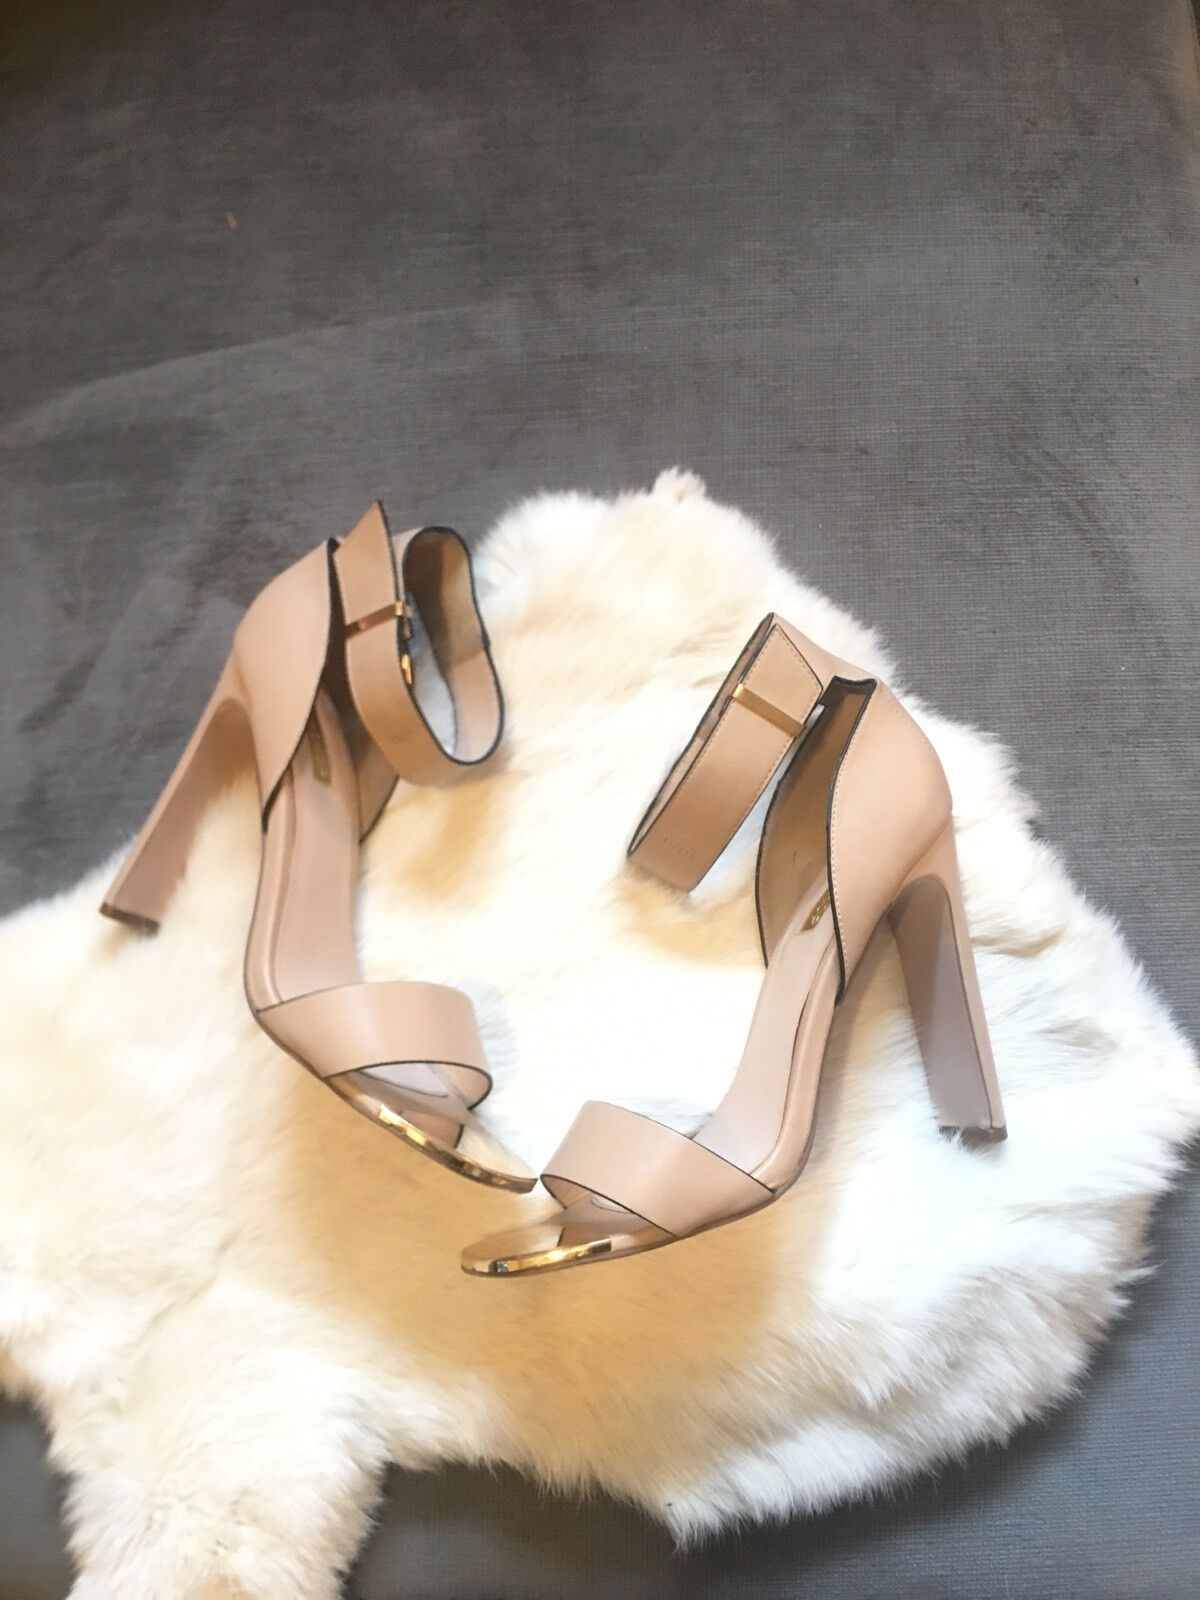 Topshop imported Nude And Gold Sandale/Heels in Nude - Sz. 40 (10 Us)